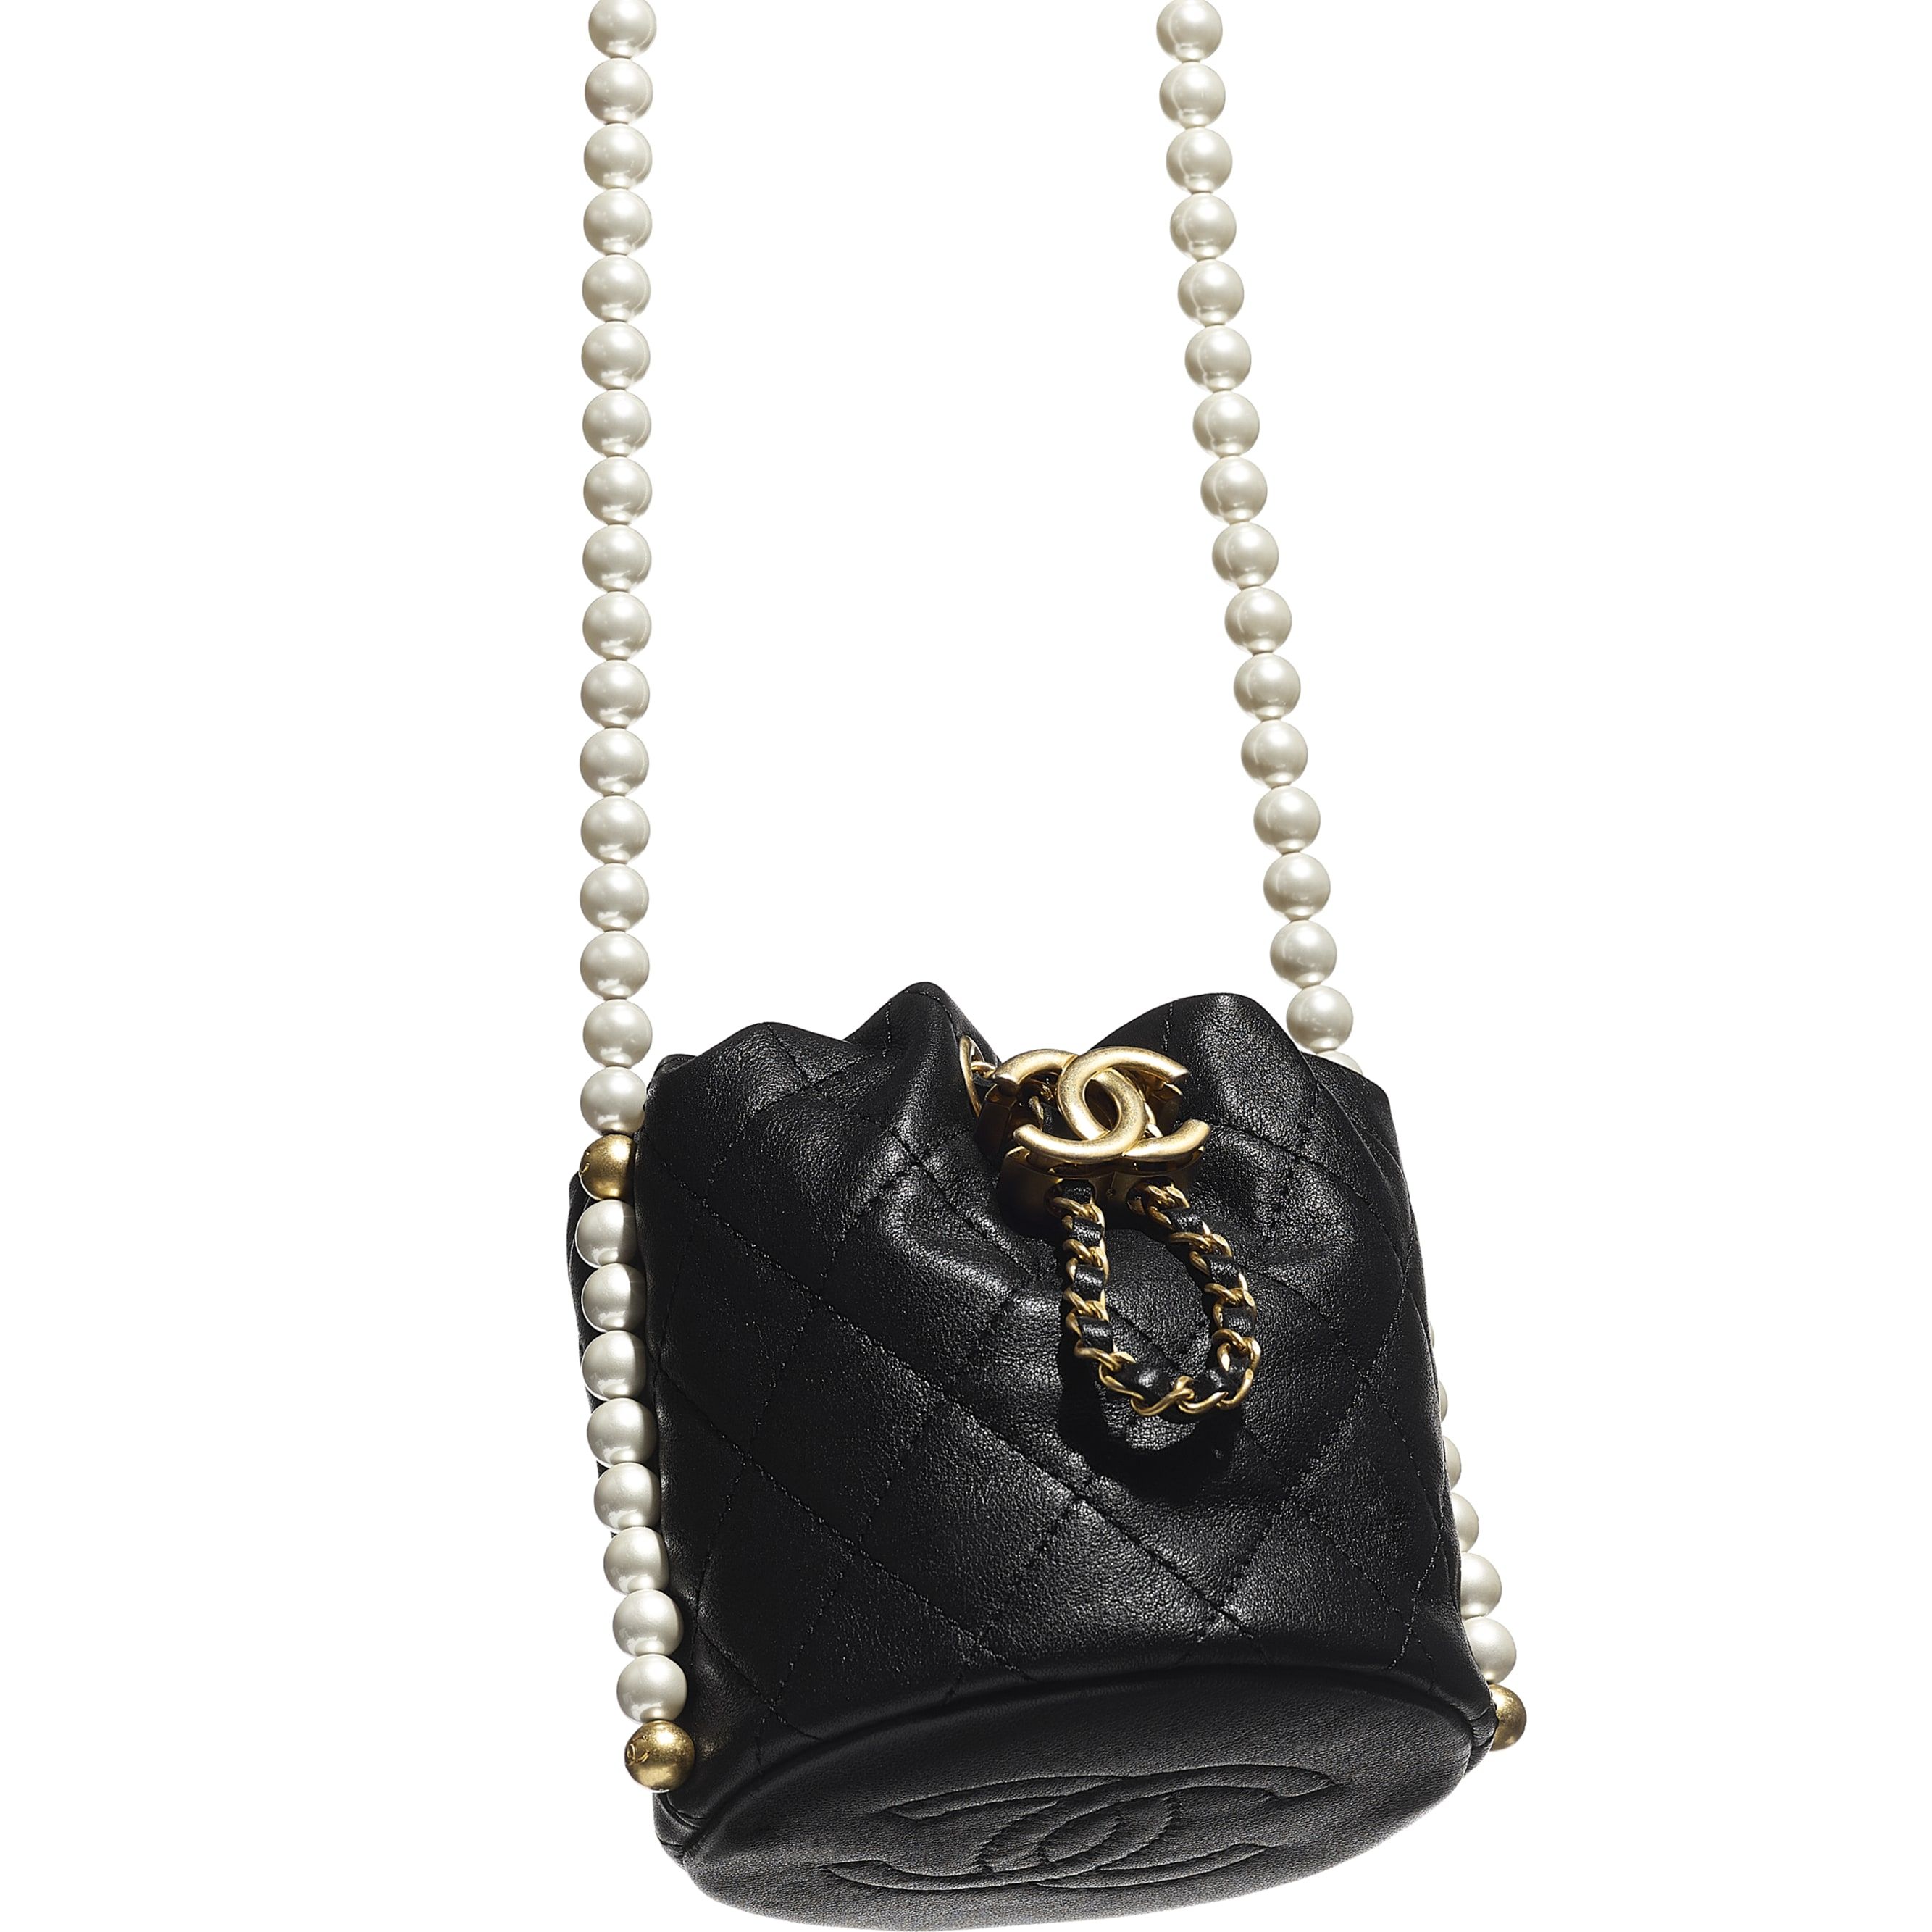 Mini Drawstring Bag - Black - Calfskin, Imitation Pearls & Gold-Tone Metal - CHANEL - Extra view - see standard sized version